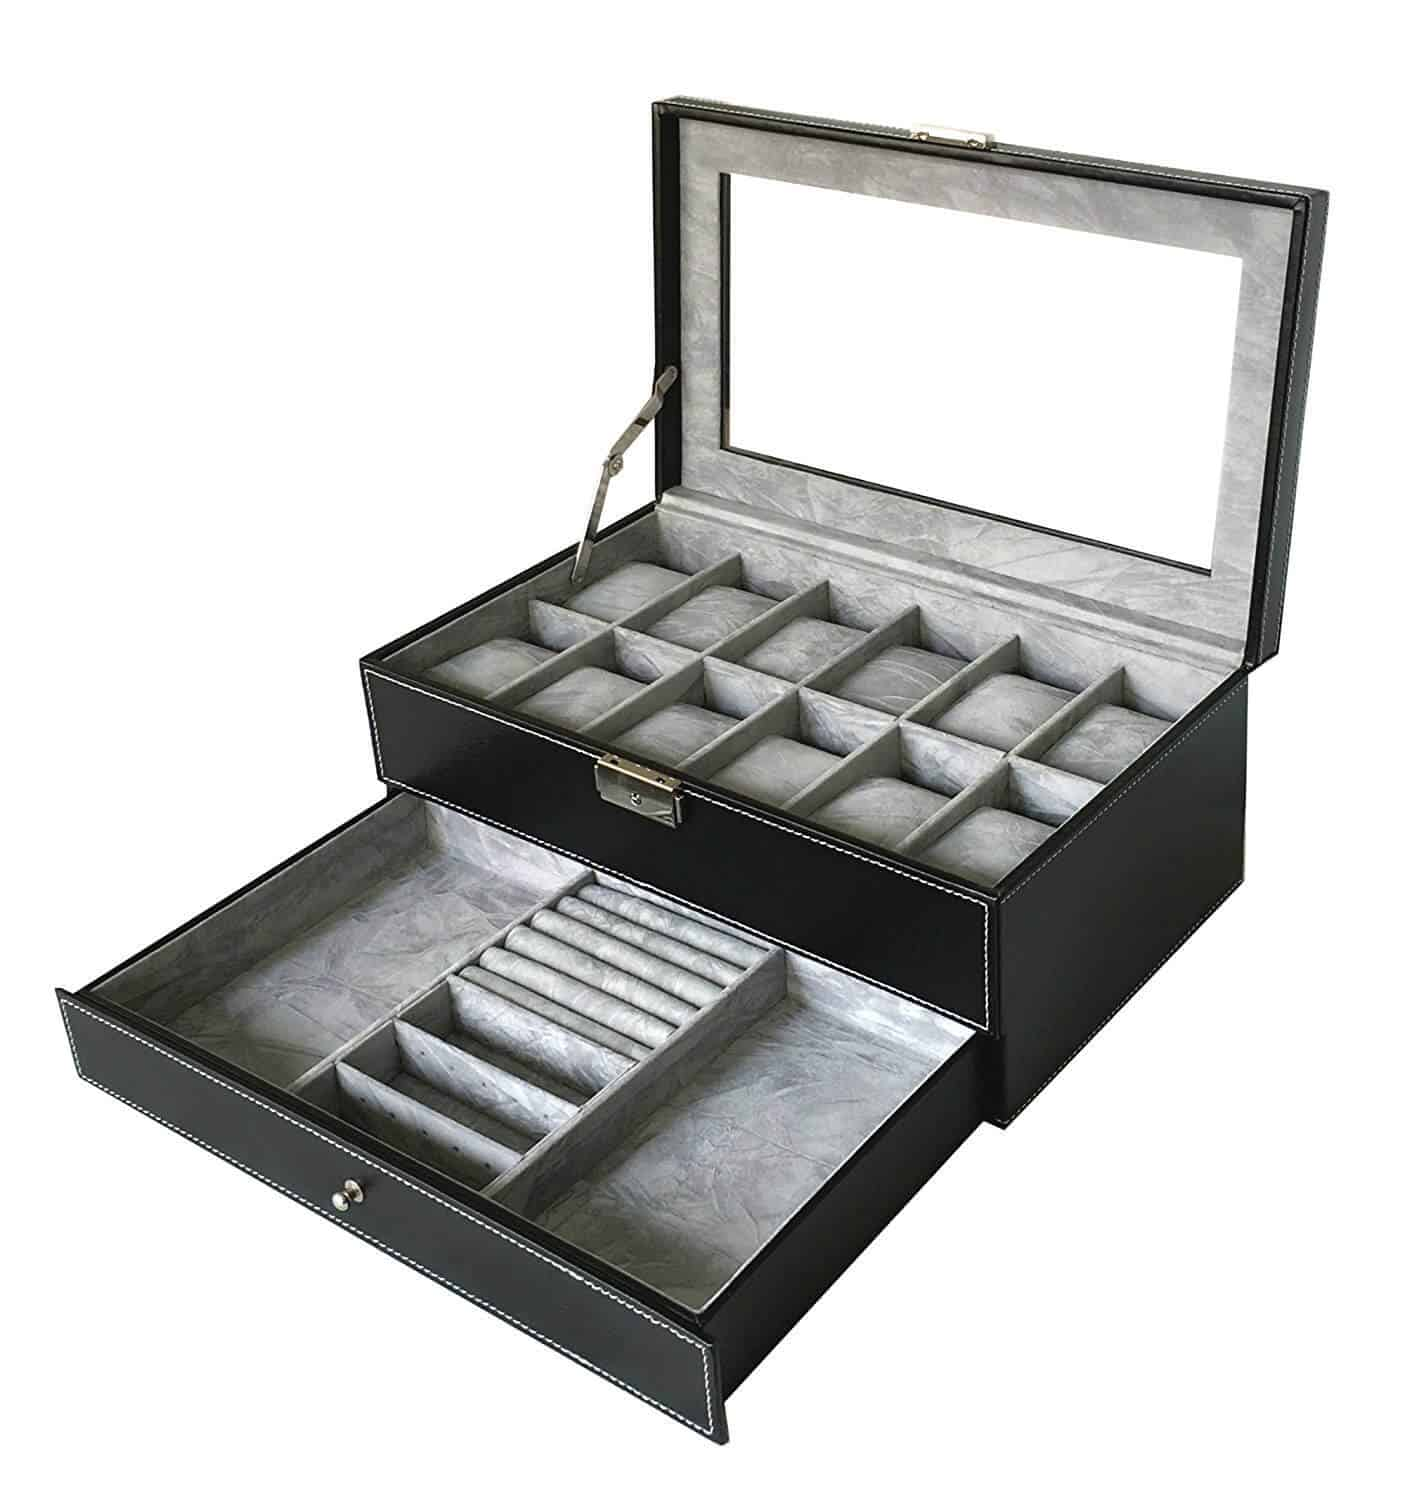 Sodynee 12 Compartment Jewelry Box Amazon Jewelry Guide